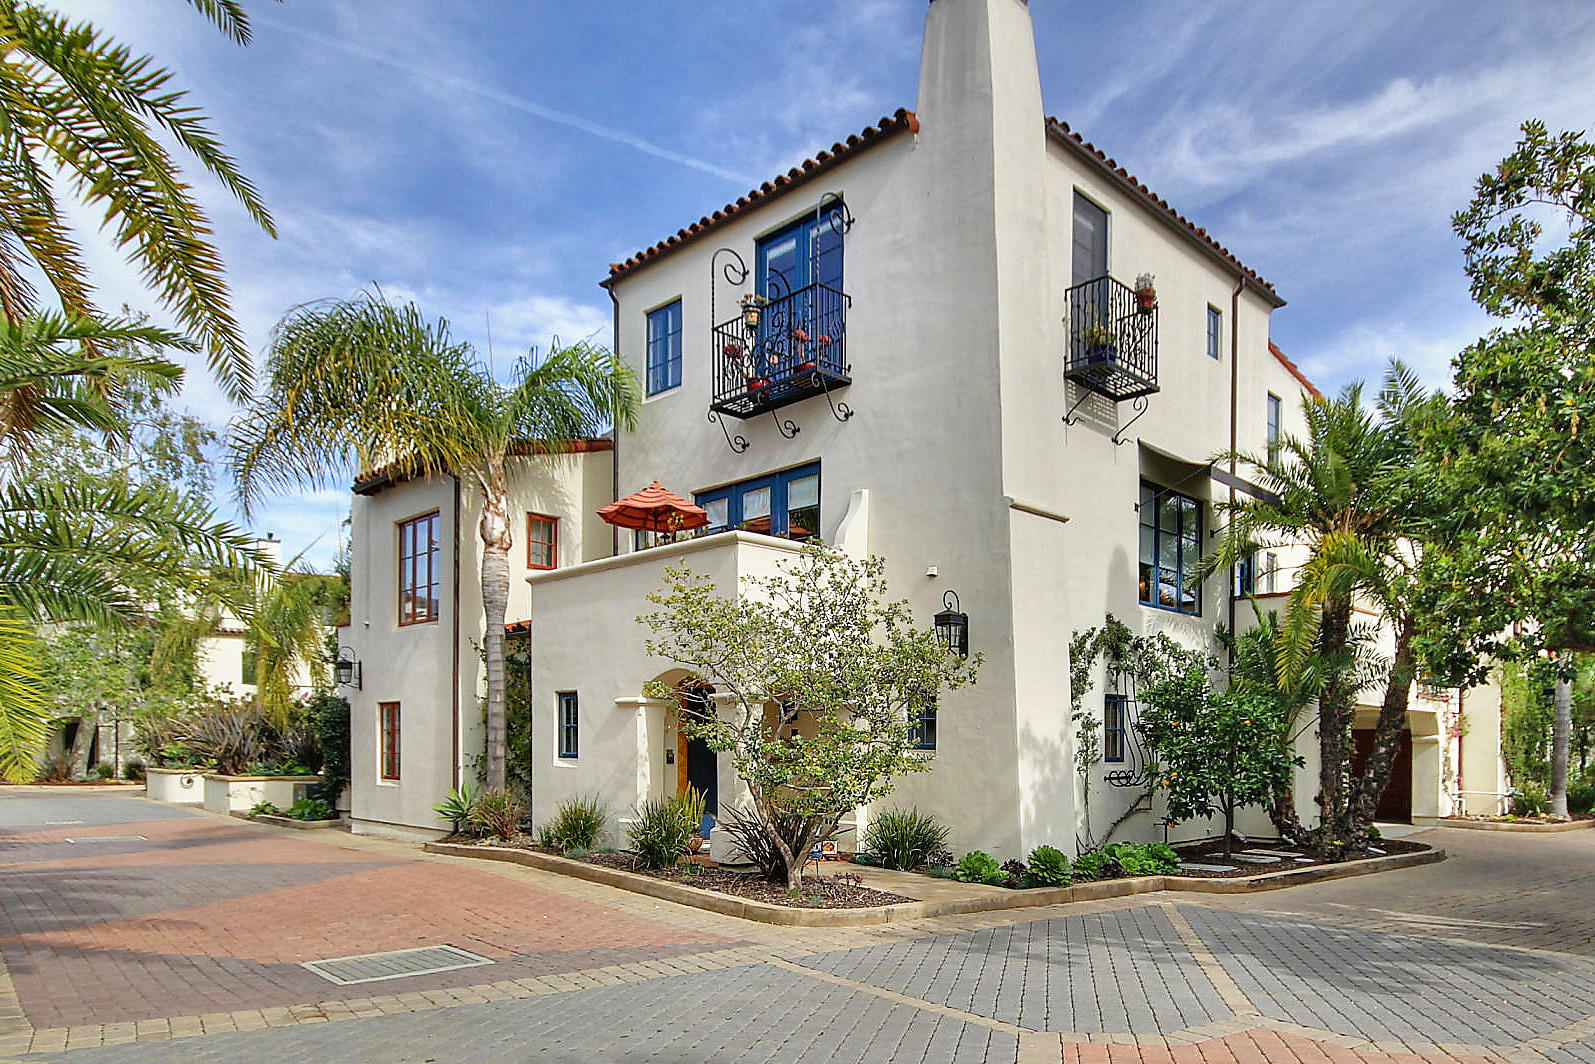 Property photo for 220 E Yanonali St #B Santa Barbara, California 93101 - 16-557